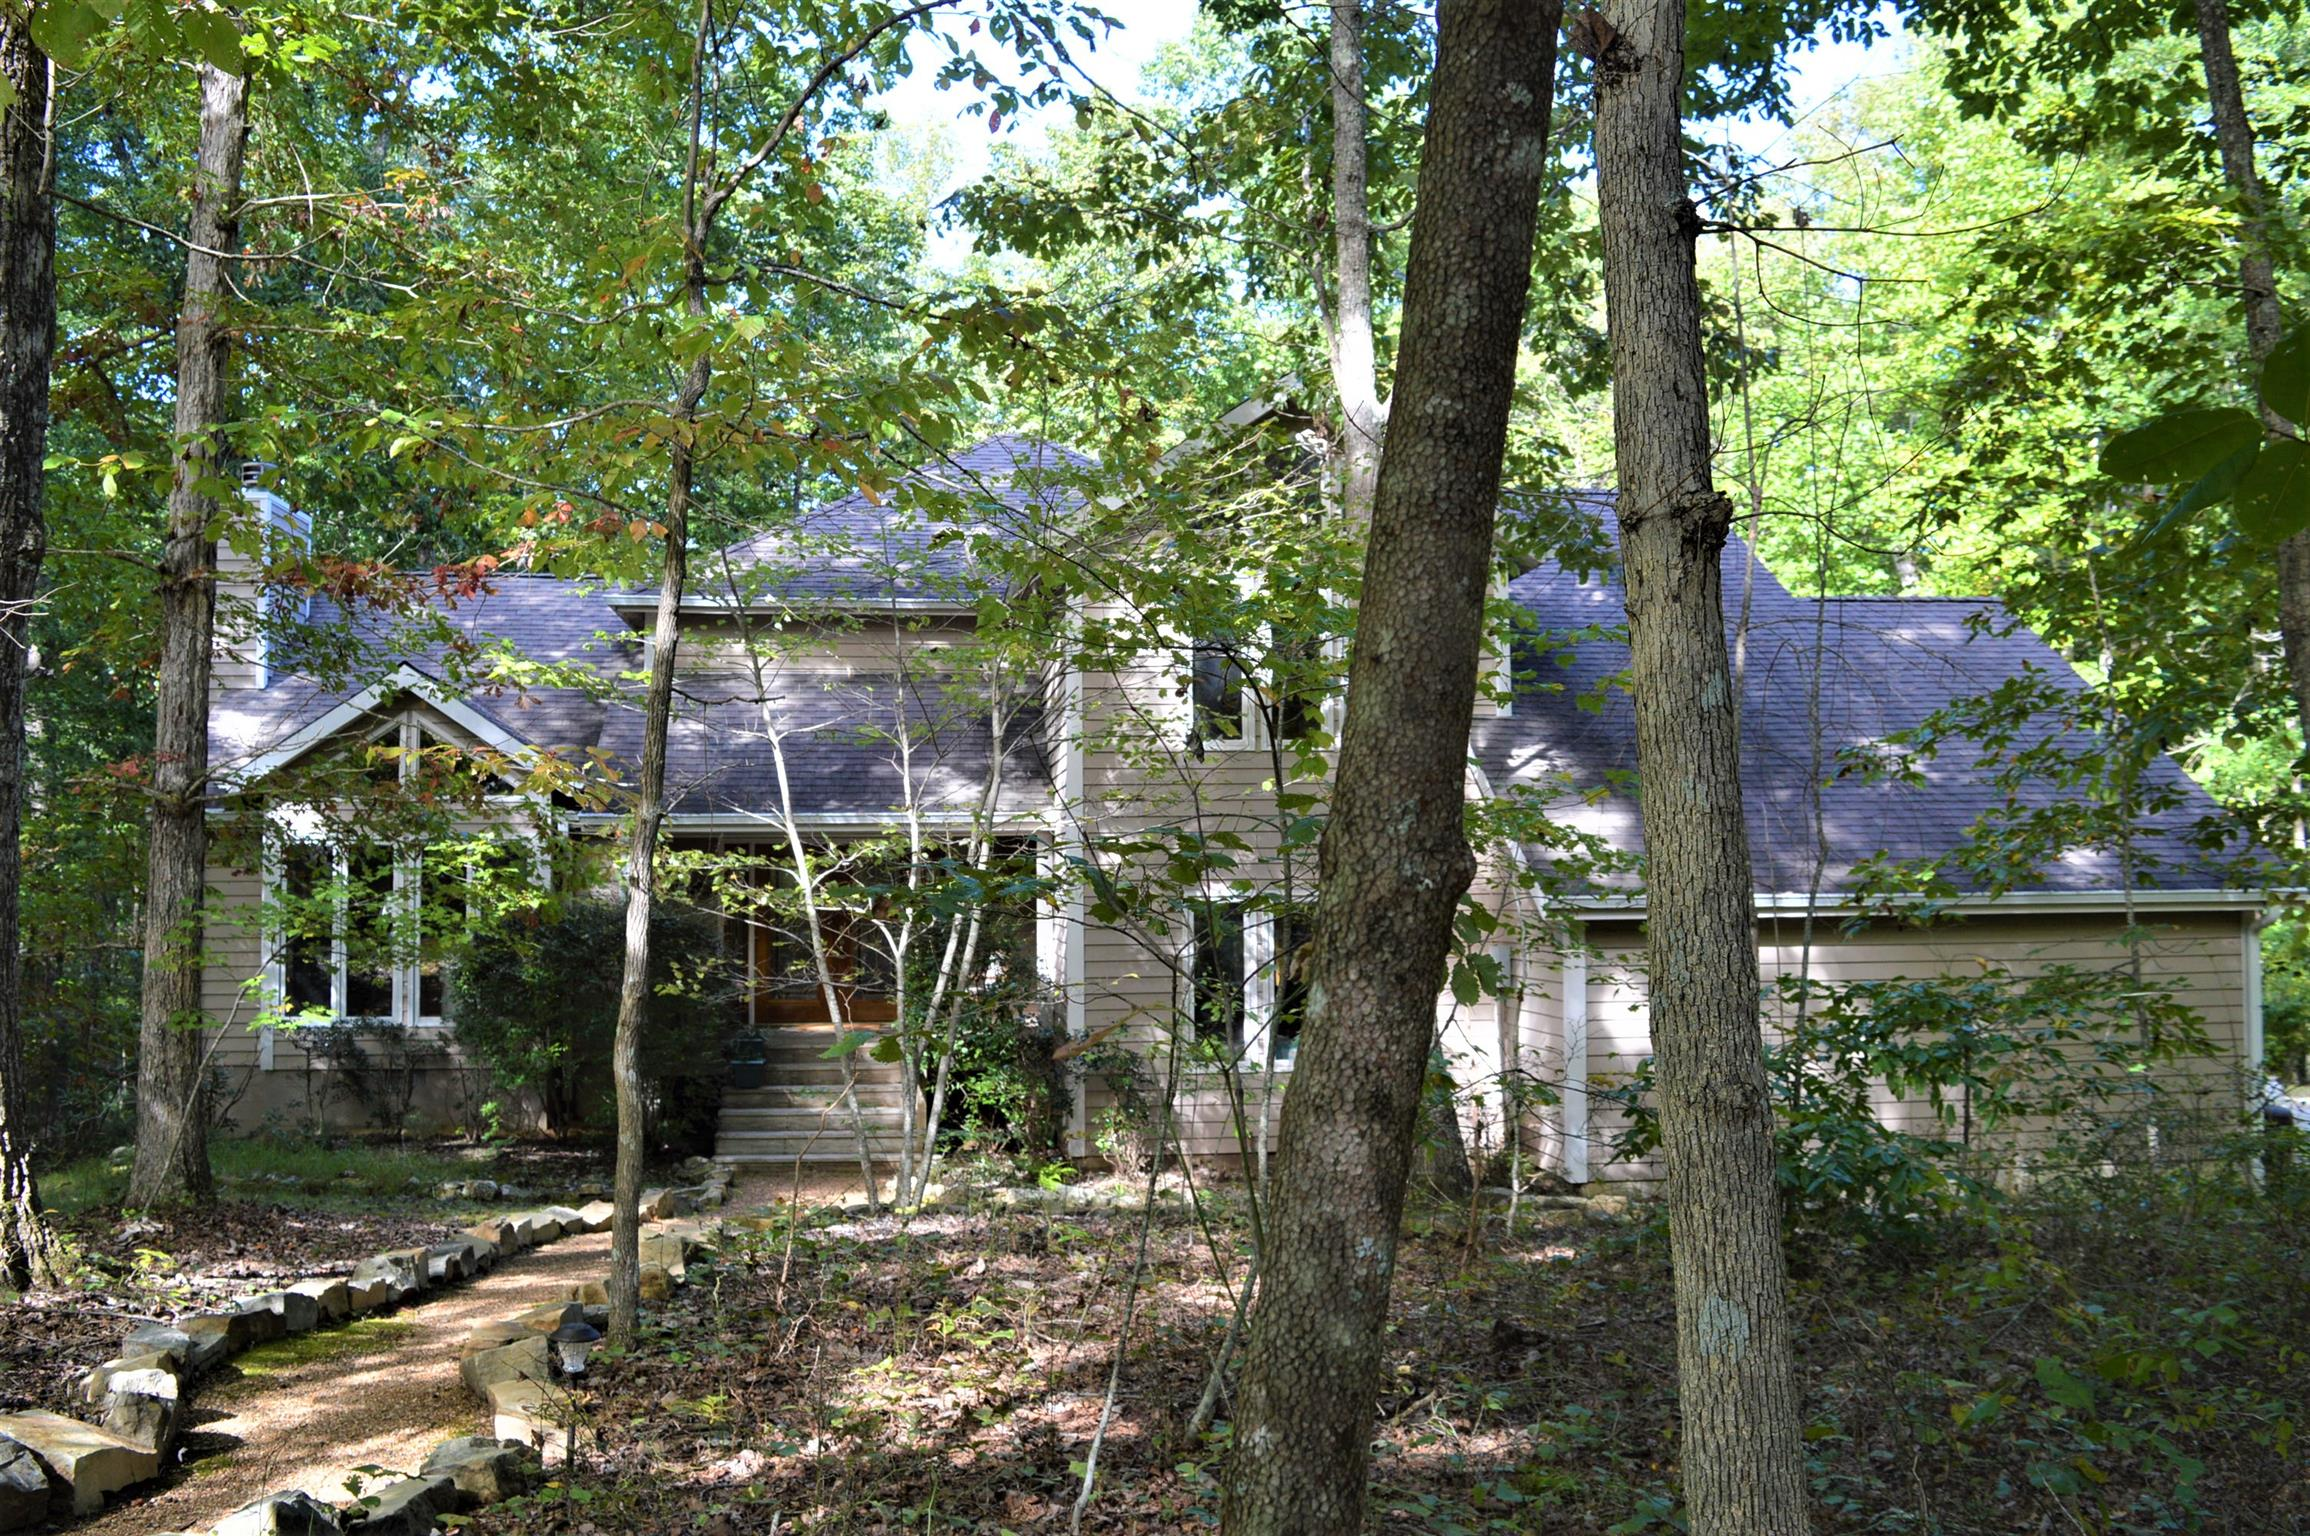 174 Carpenter Cir, Sewanee, TN 37375 - Sewanee, TN real estate listing